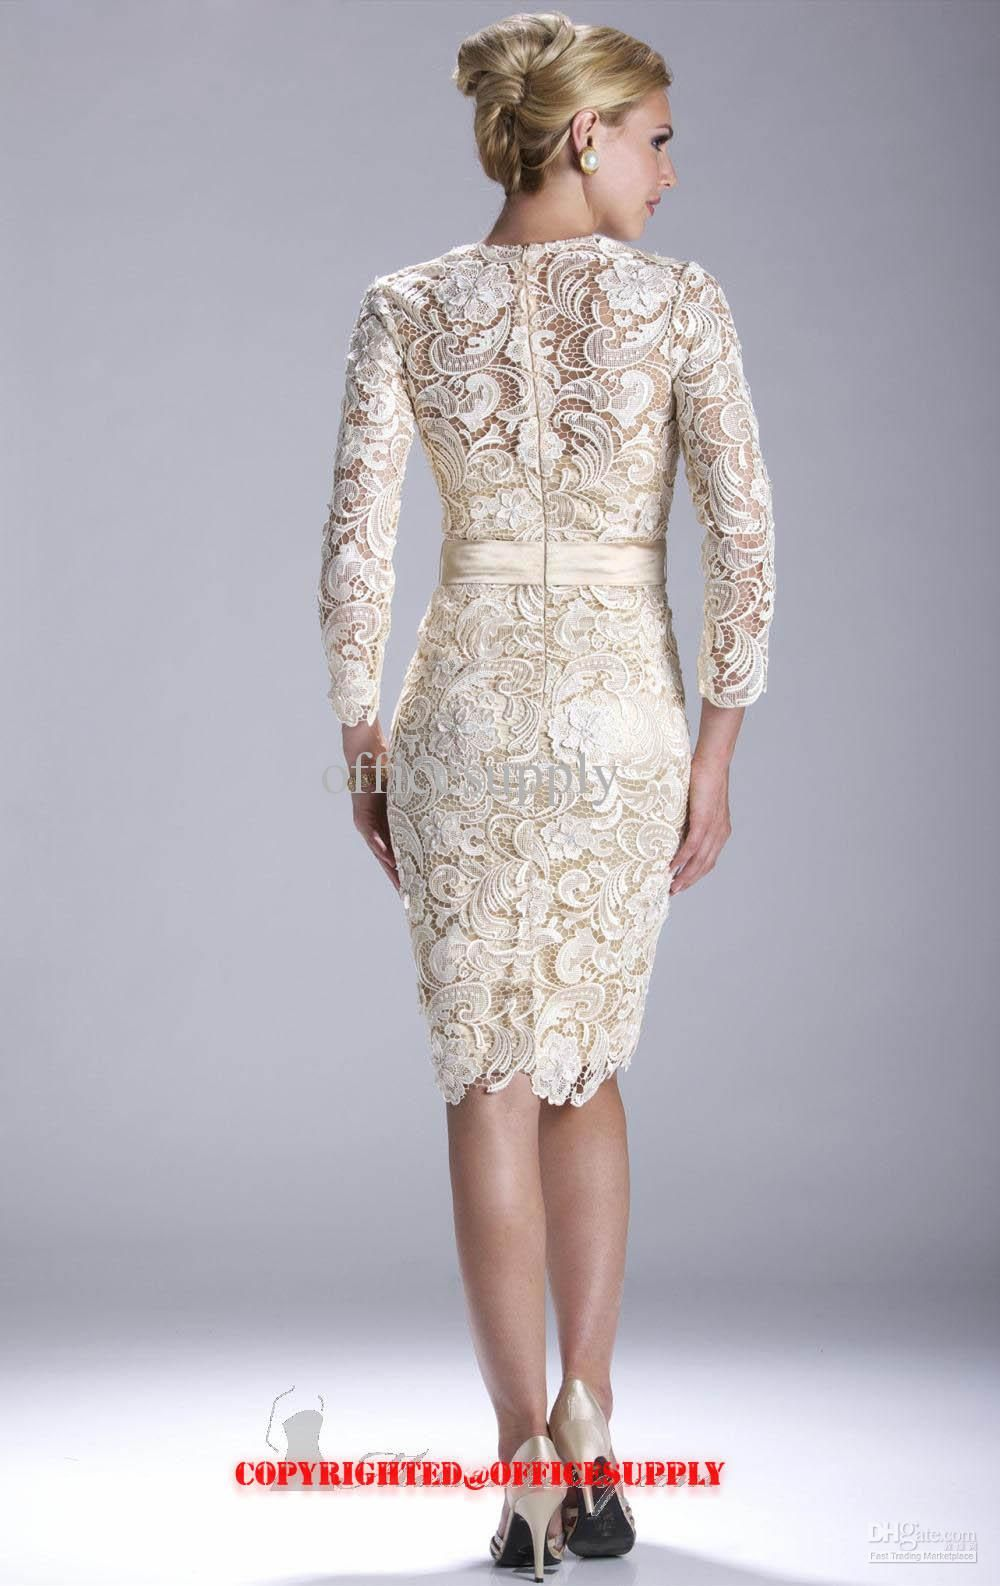 Pin By Jessica Hayes Crawford On Put On Your Sunday Dress When You Feel Down And Out Evening Dresses Elegant Long Sleeve Lace Evening Gown Lace Evening Gowns